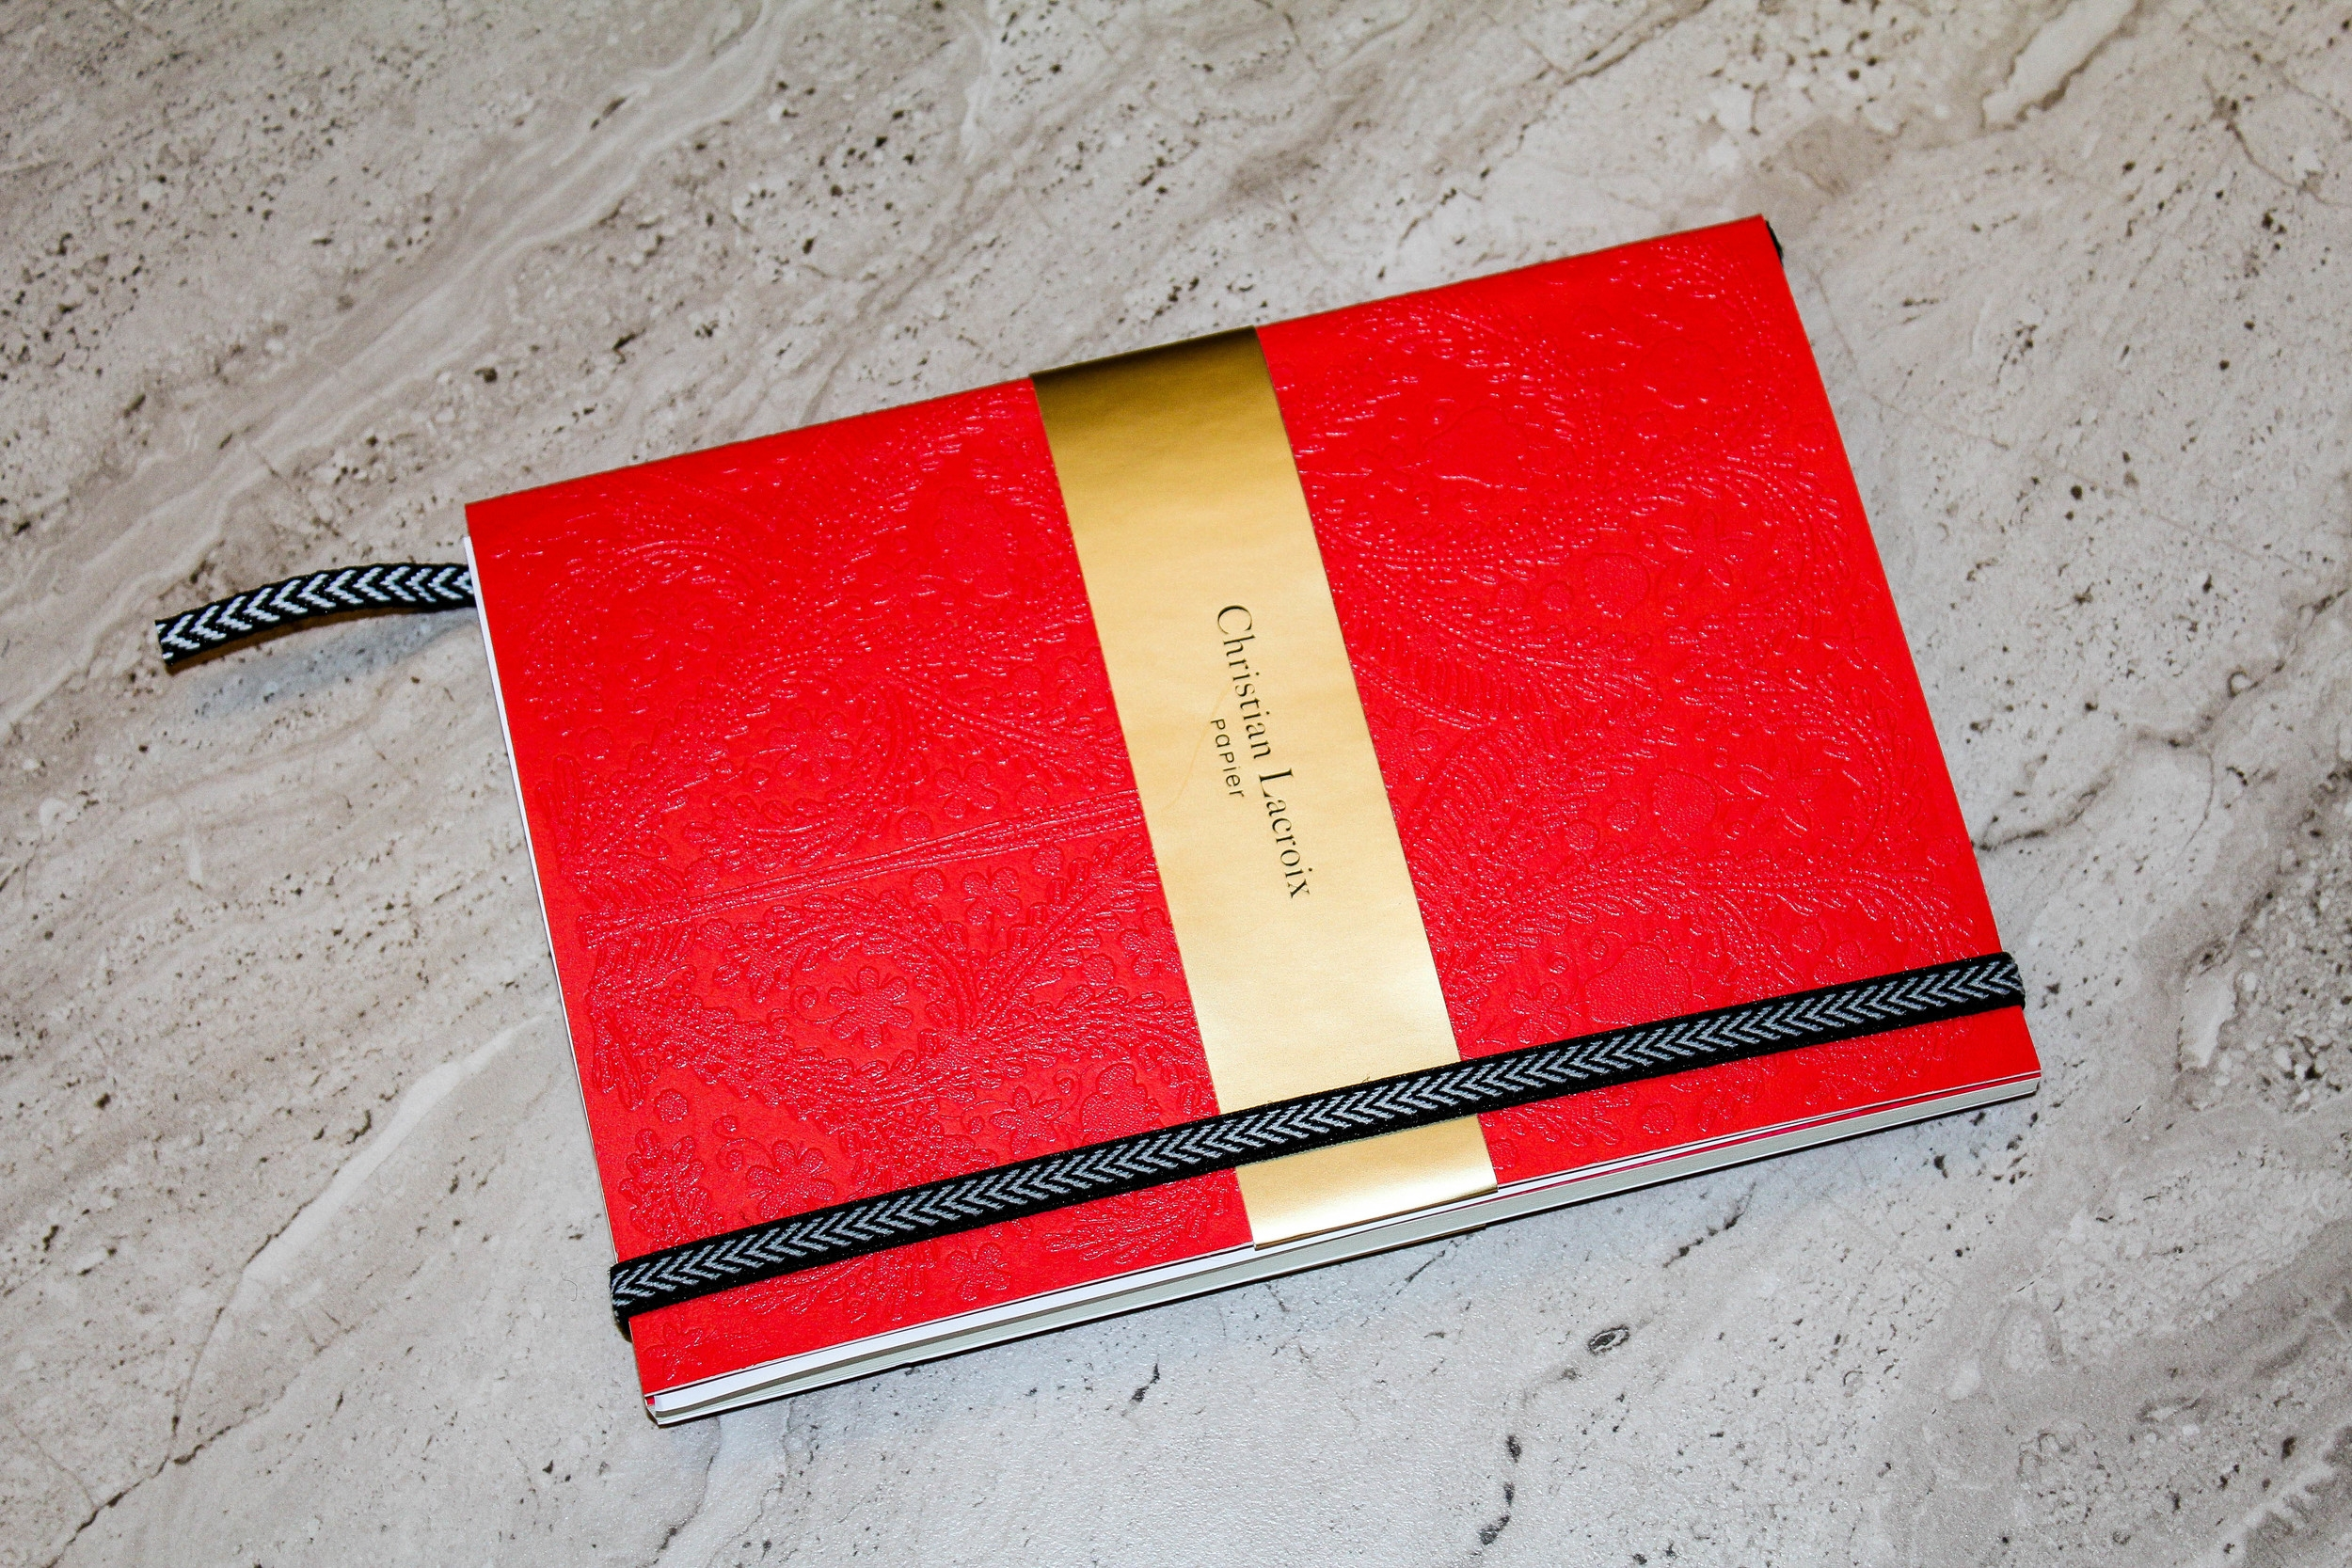 Christian Lacroix Embossed Red Journal